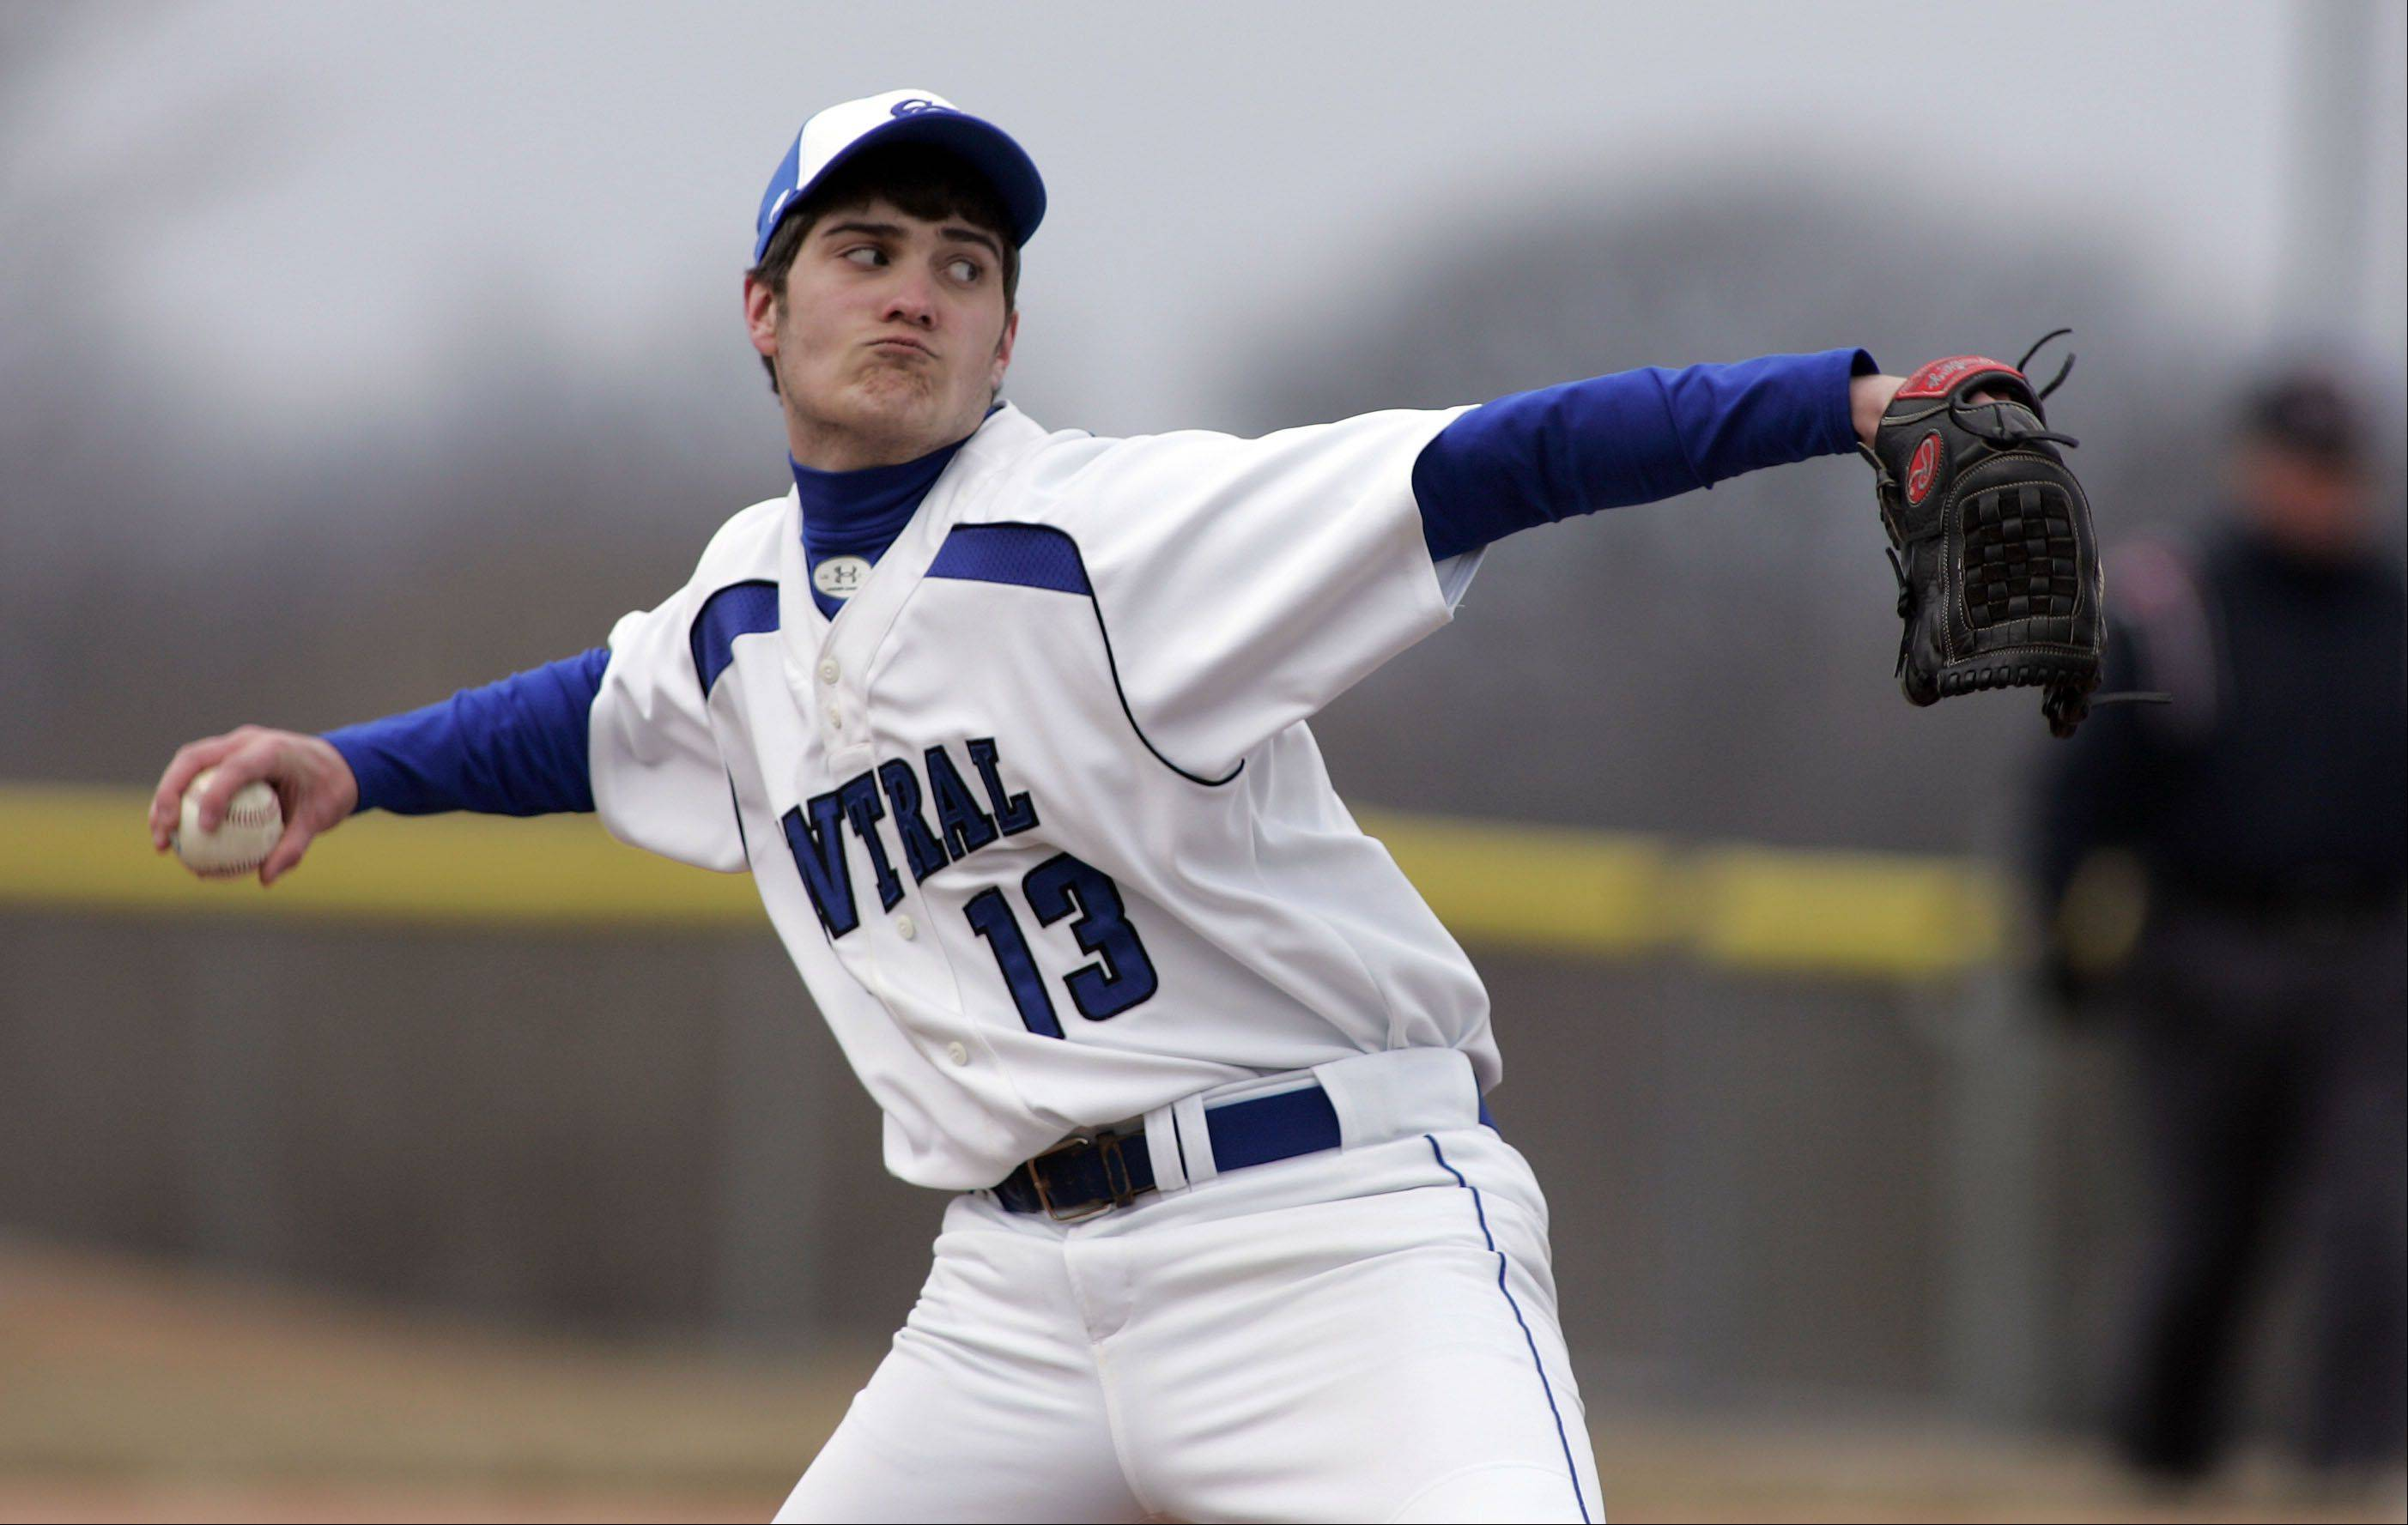 Burlington Central's Alex Bell delivers during Cary-Grove at Burlington Central baseball Saturday.